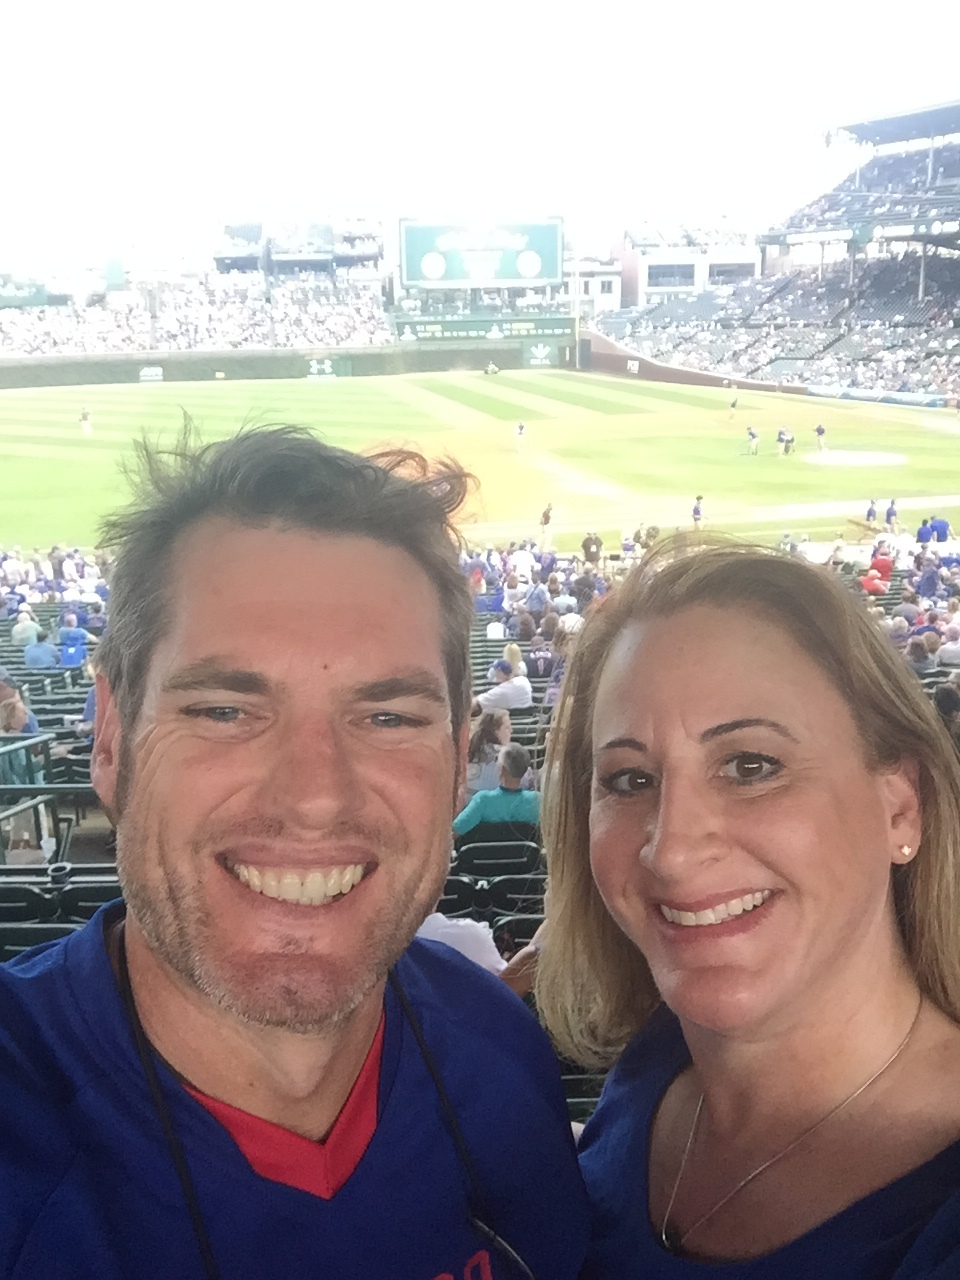 We love going to Cubs baseball games